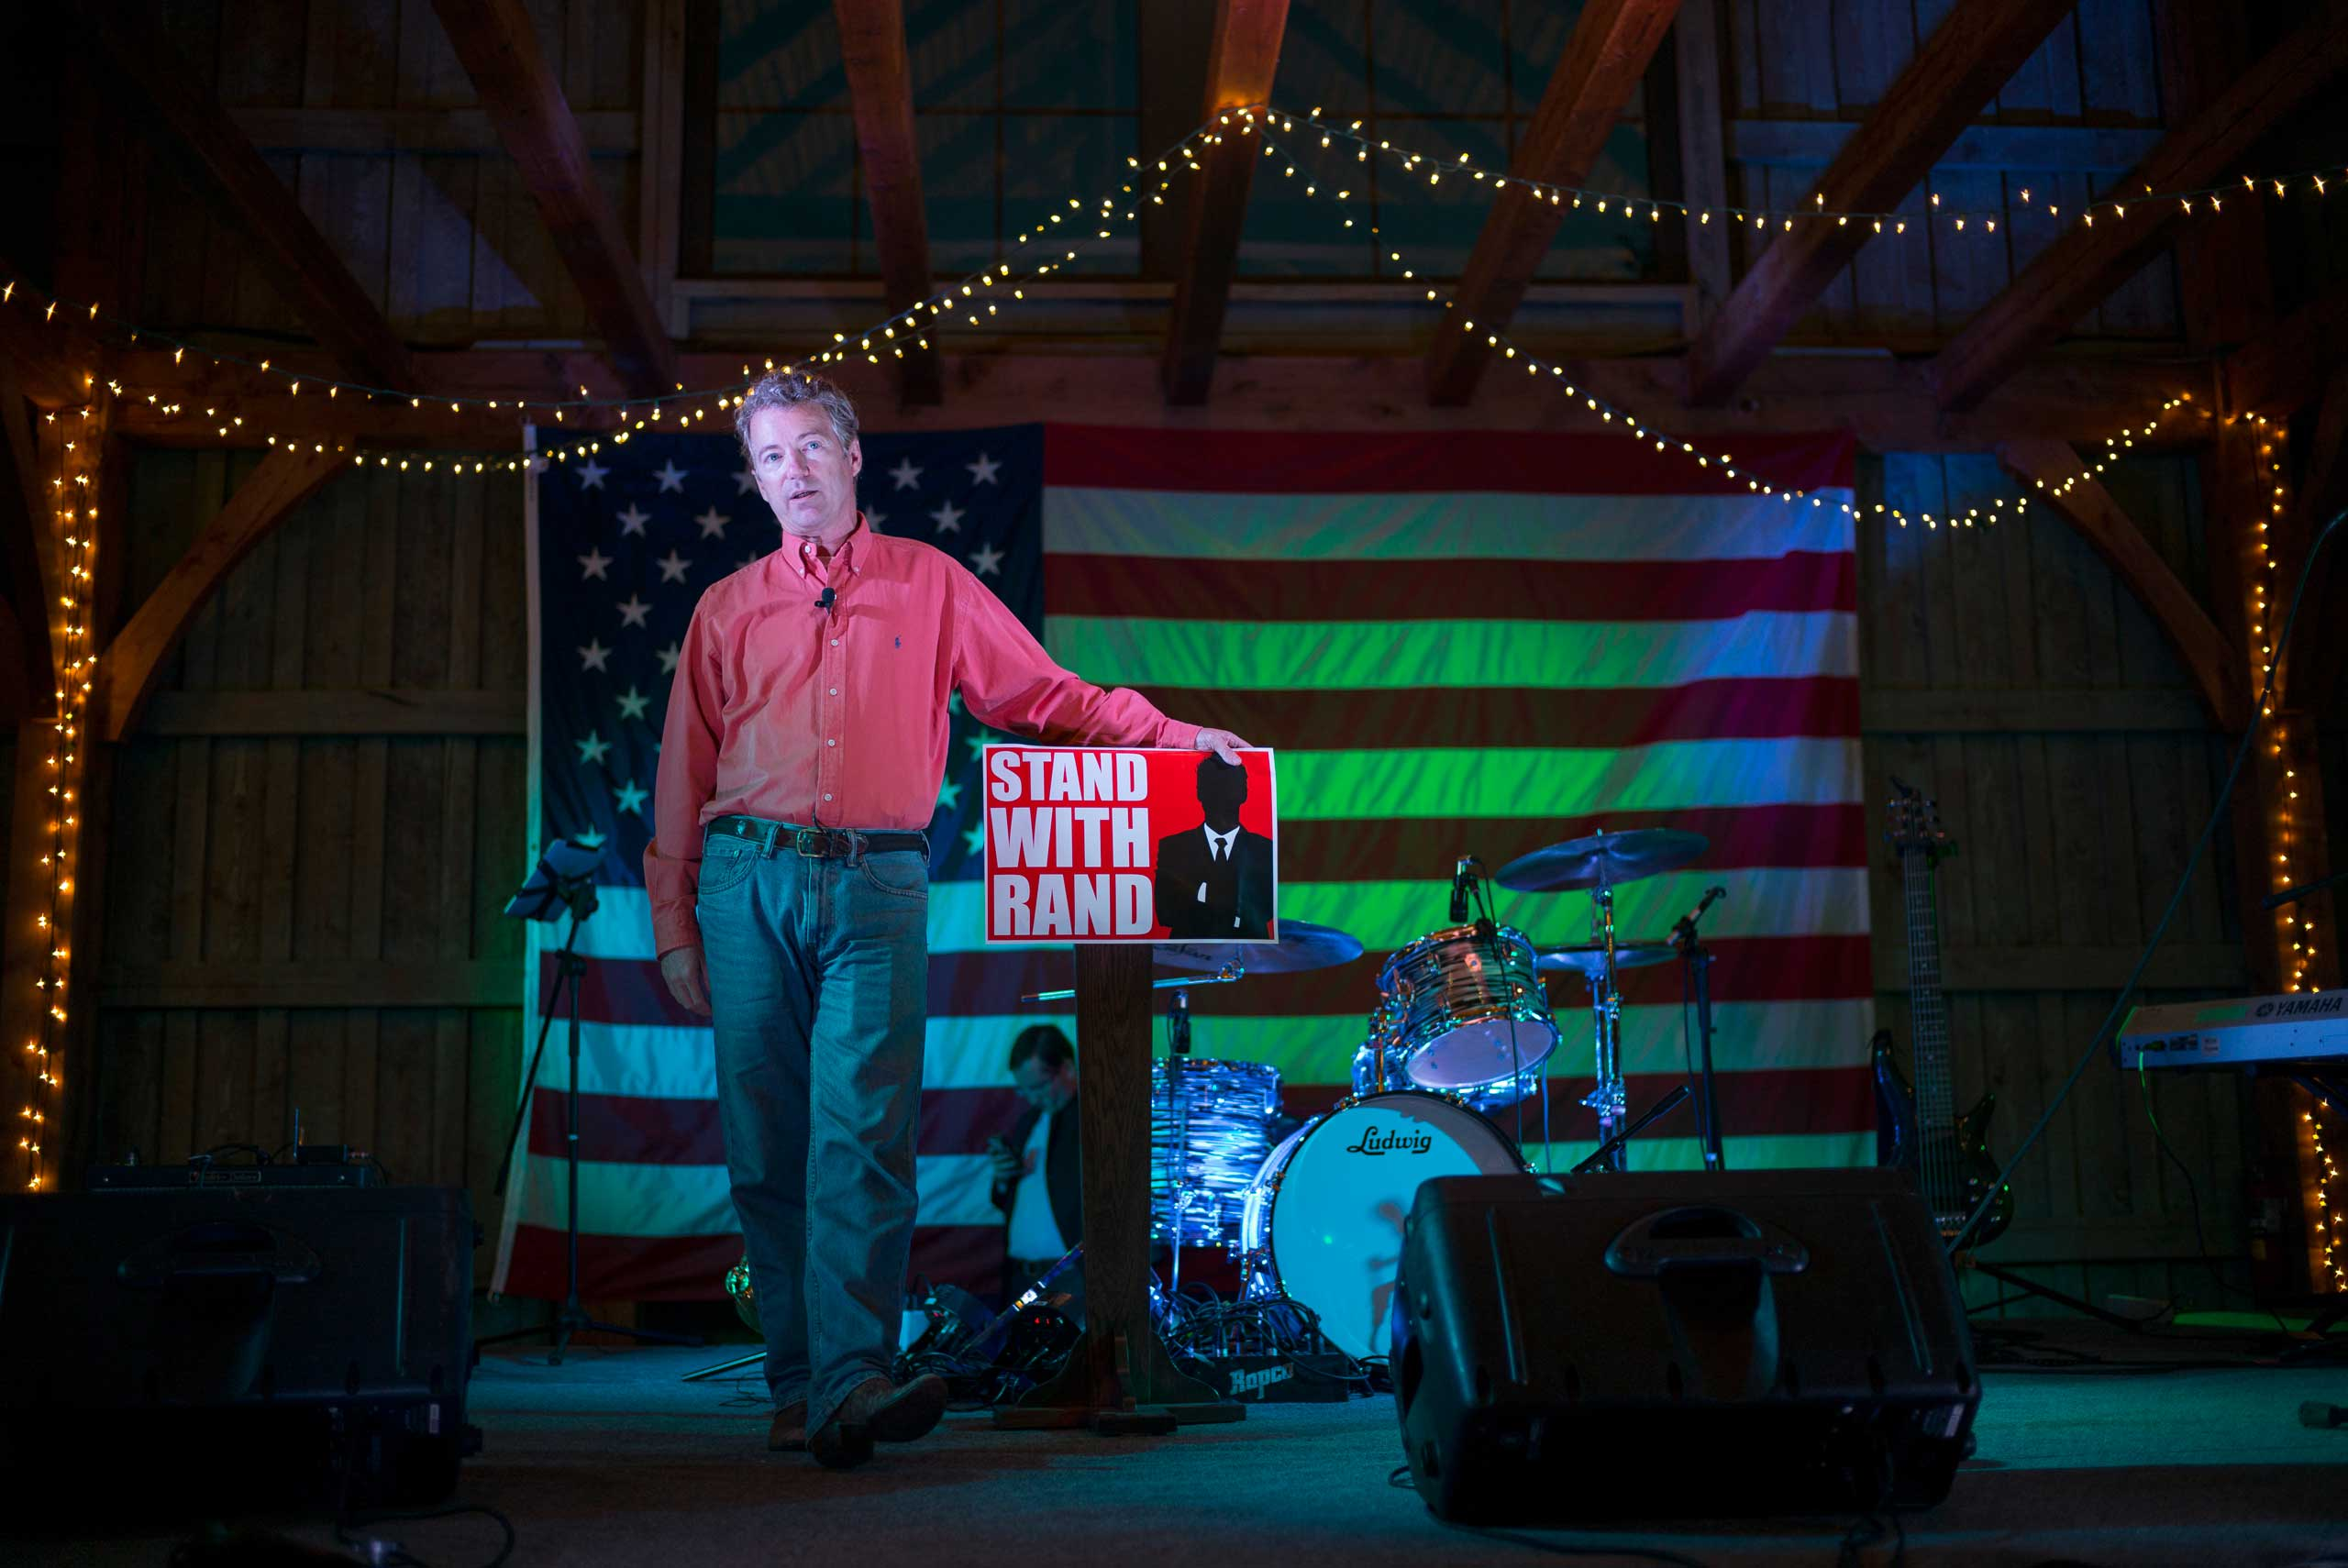 Senator Rand Paul speaks at a BBQ event at the Donnelly Barn in Bowling Green, Ky. on Oct. 12th, 2014.